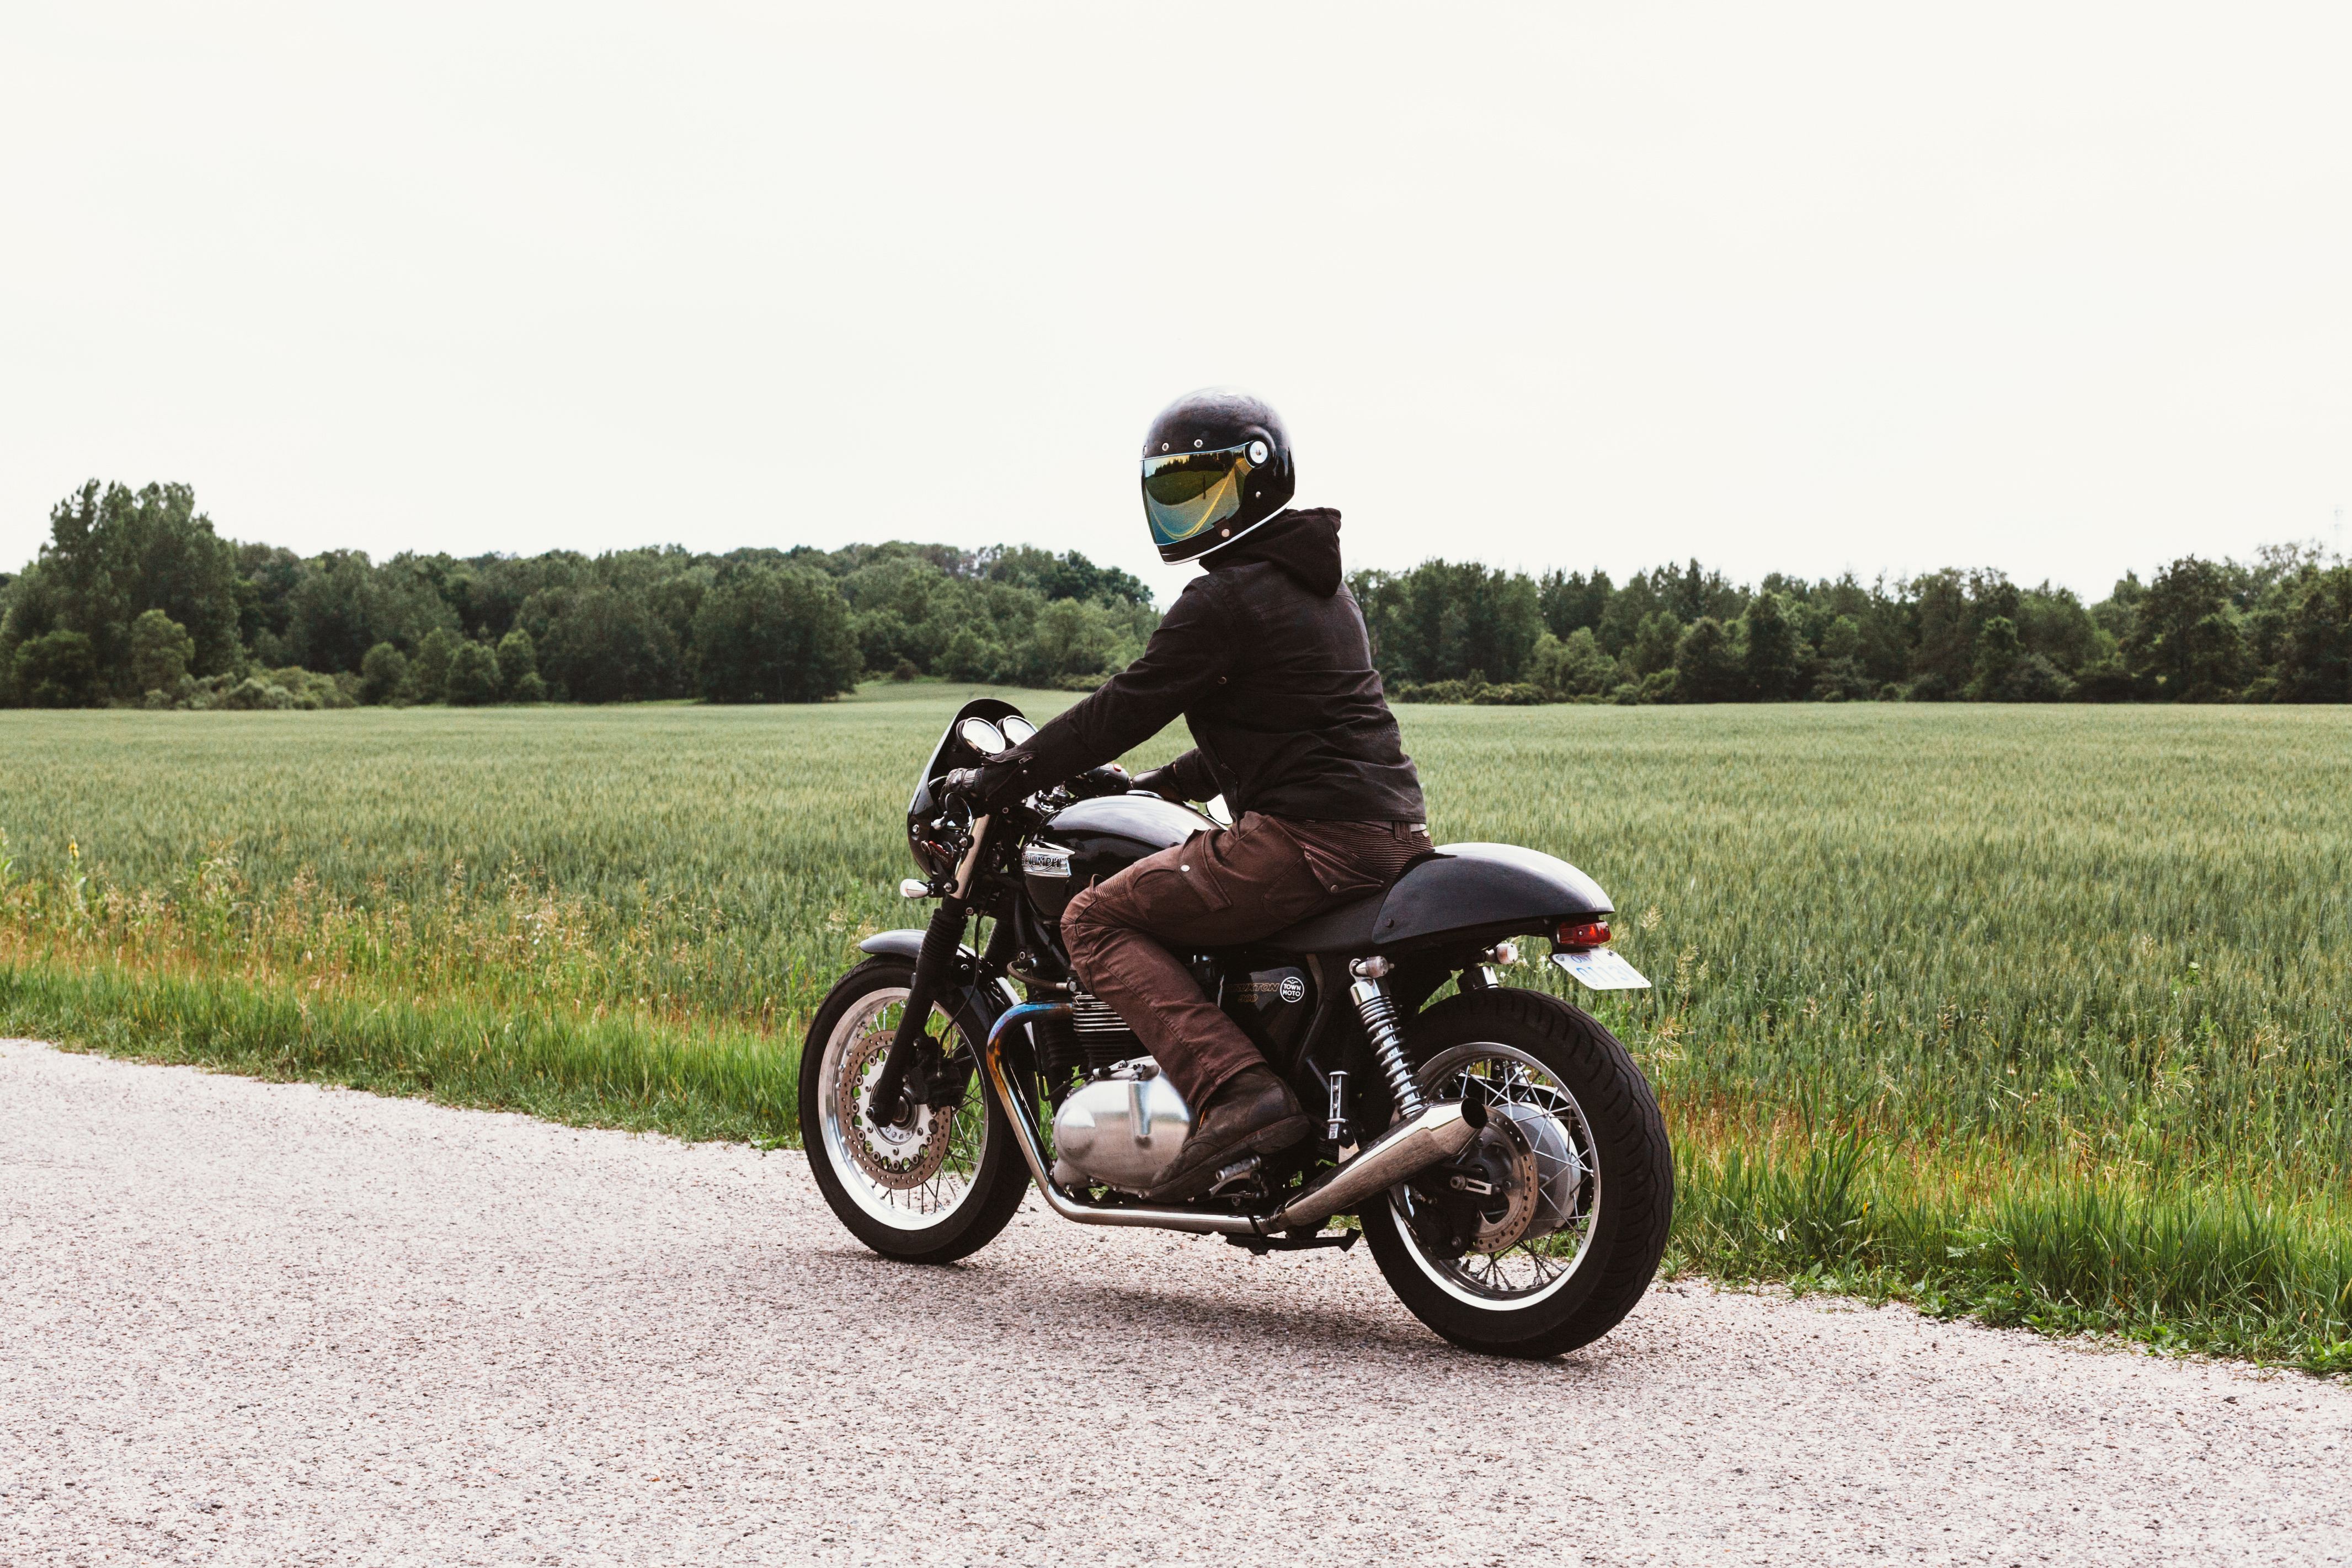 Bmw London Ontario >> Food, Friends and Motorcycles—Filming an Episode of Dead Set on Life with Celebrity Chef Matty ...